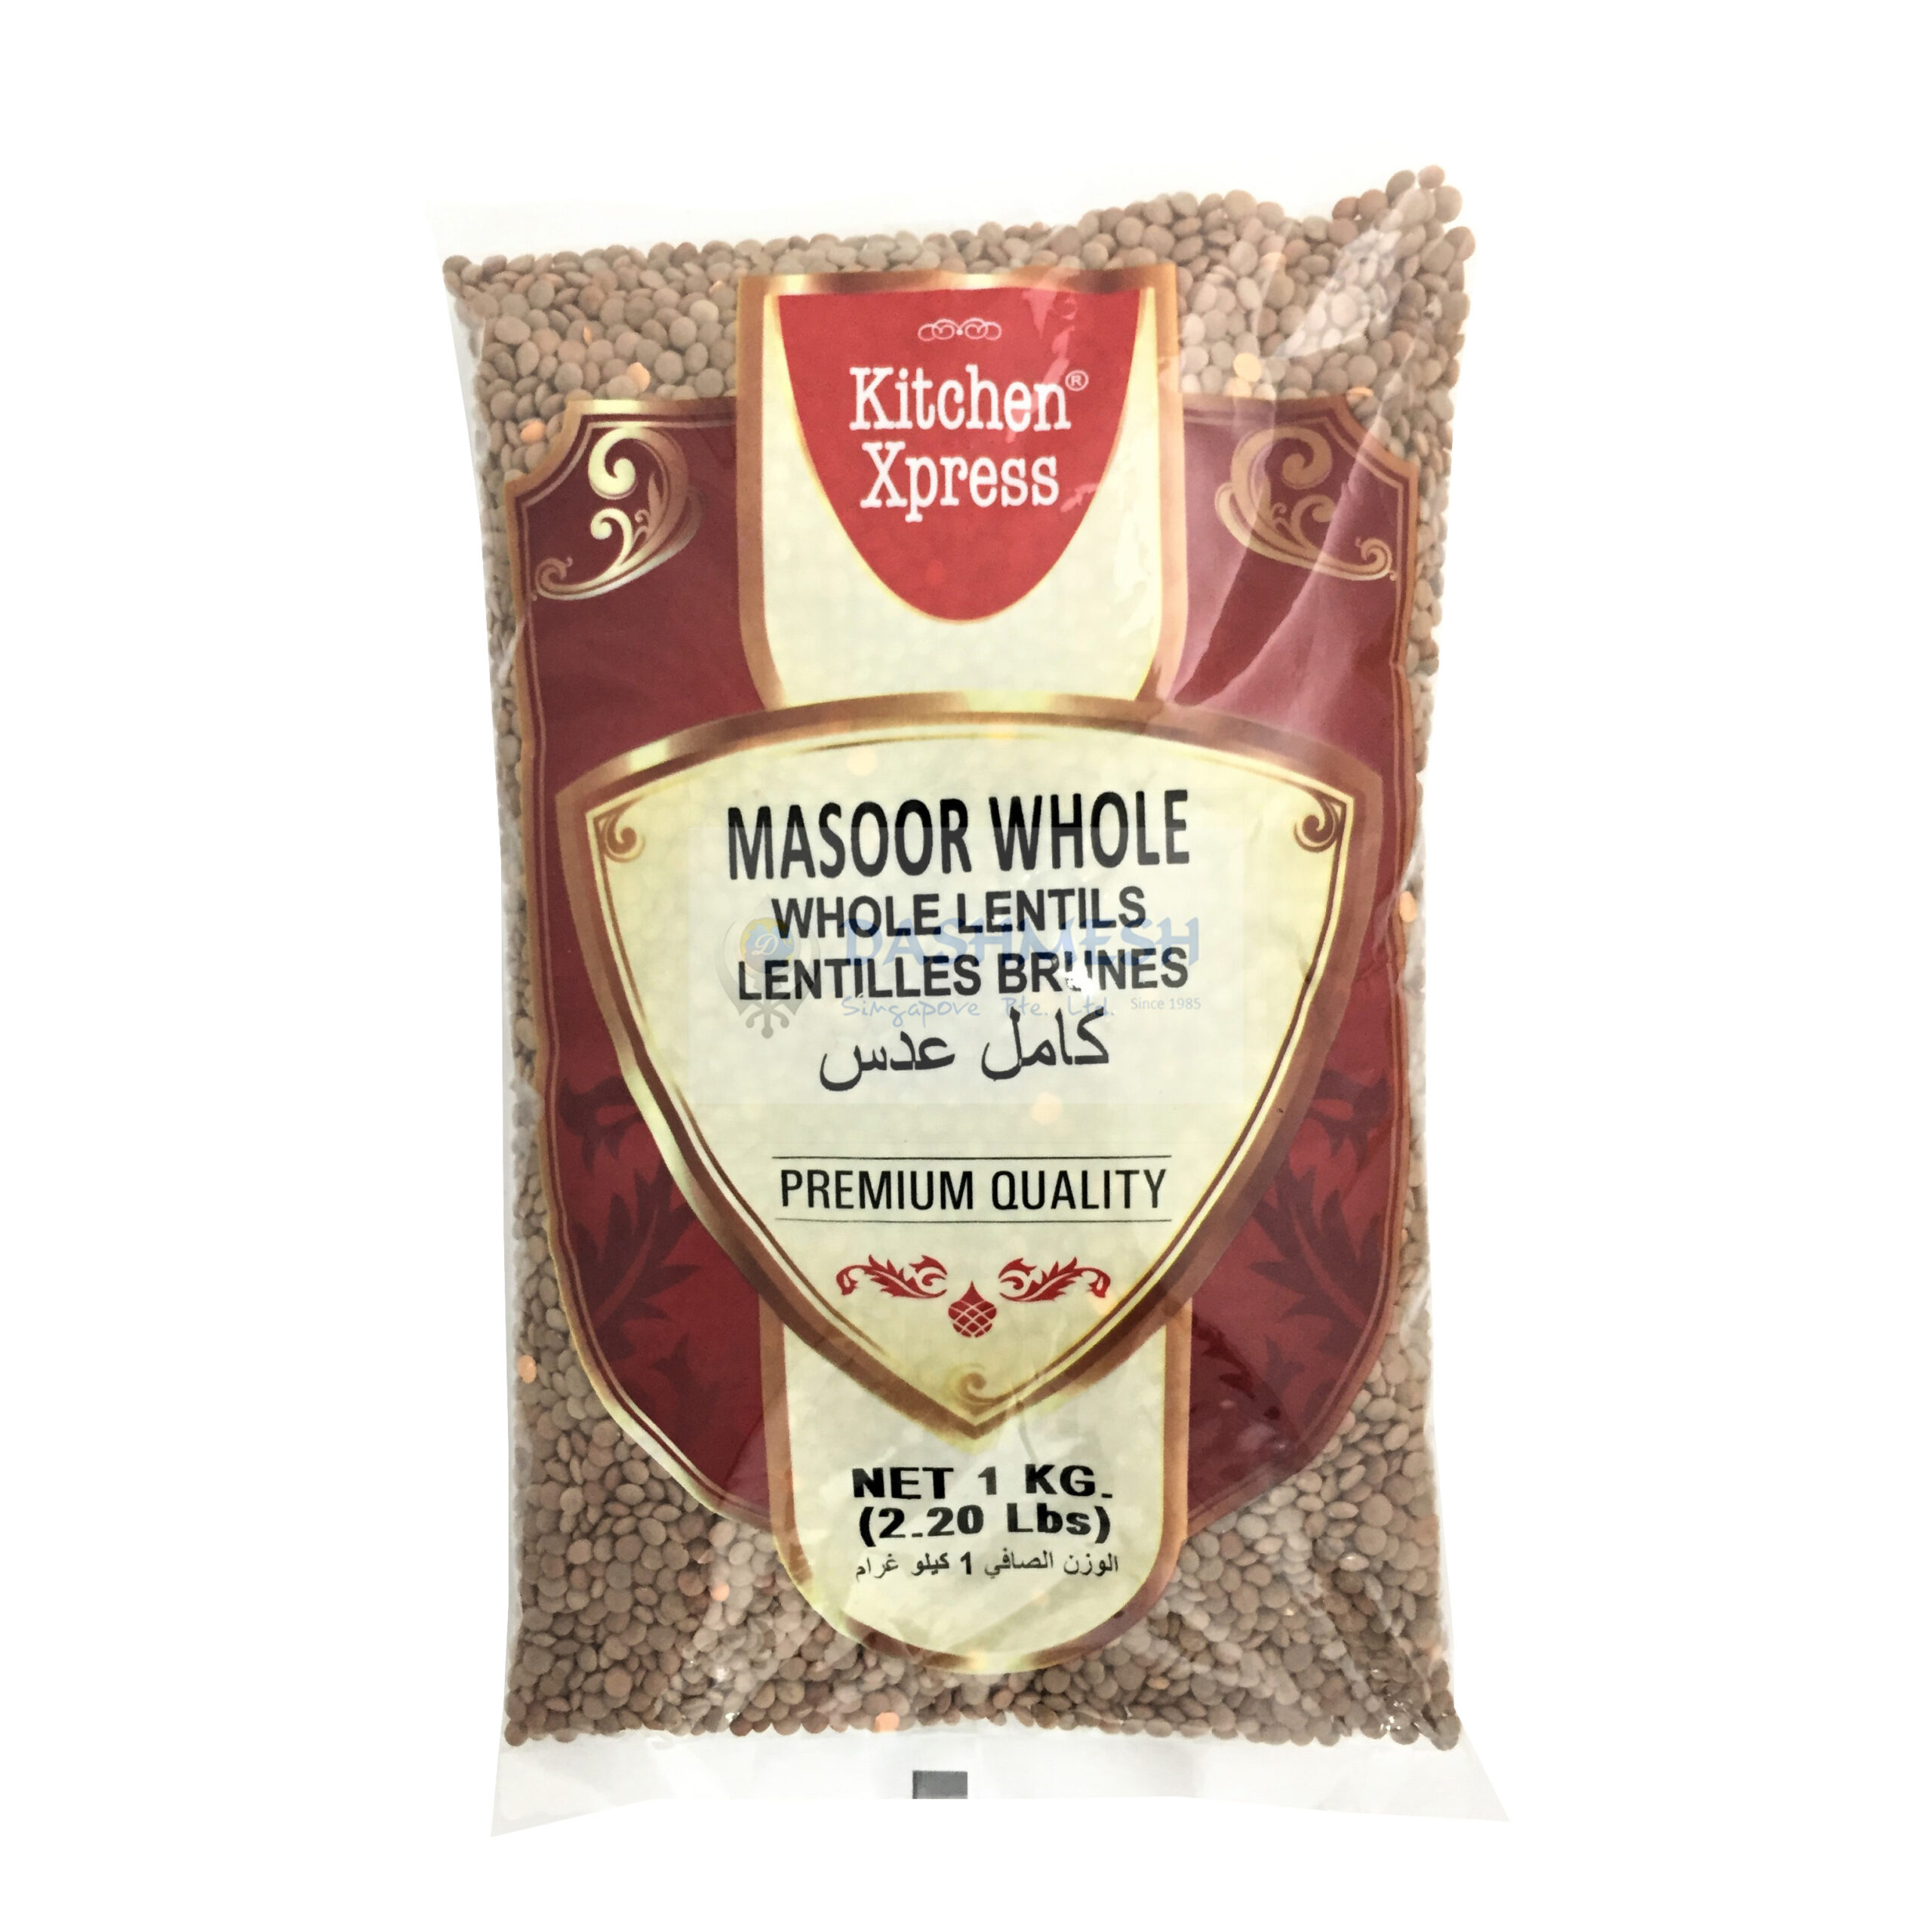 Kitchen Xpress Masoor Whole 1Kg & 5Kg